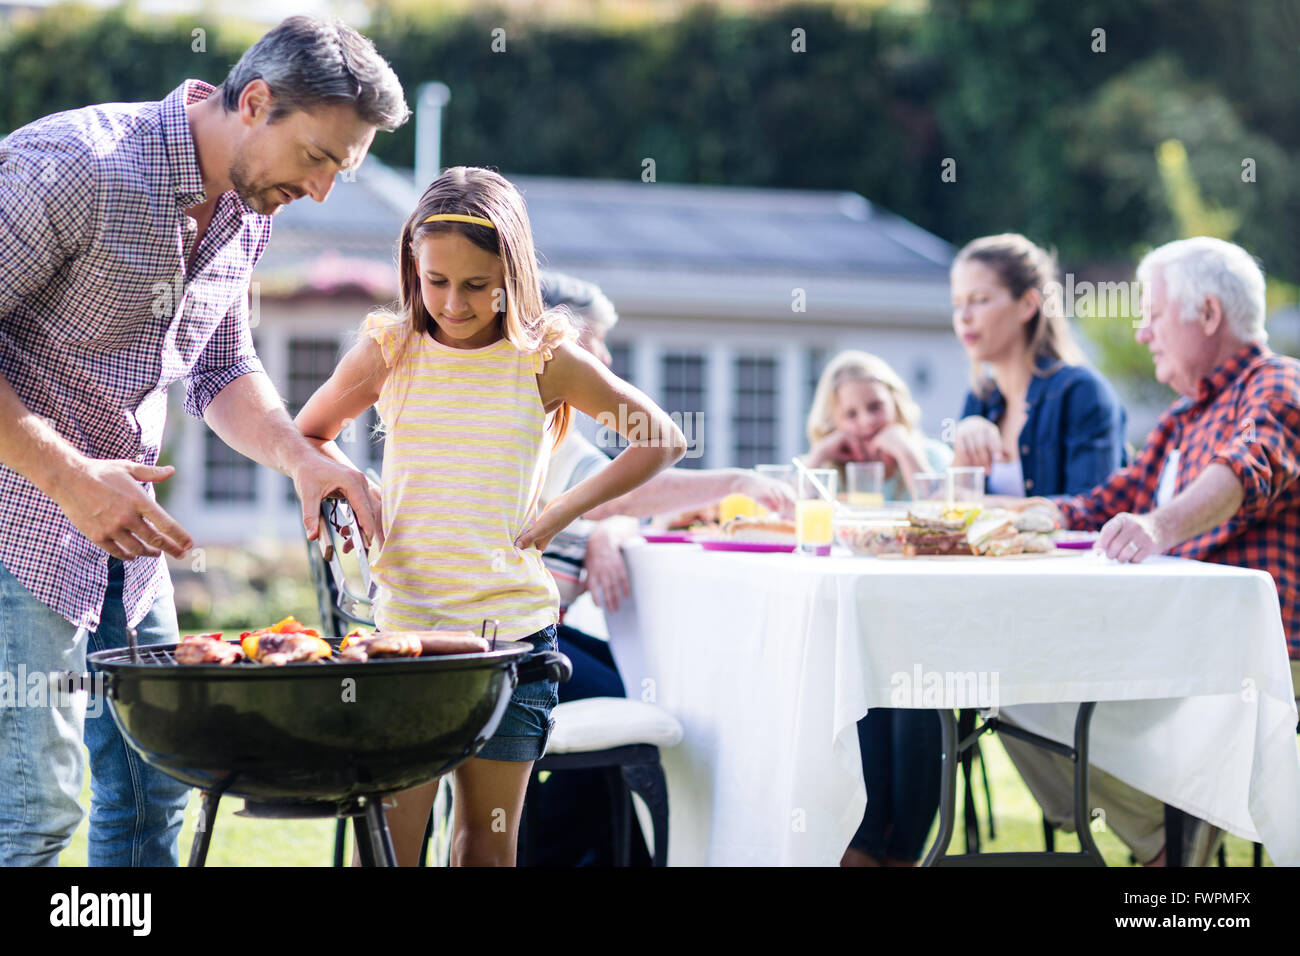 Father and daughter at barbecue grill while family having lunch in background Stock Photo